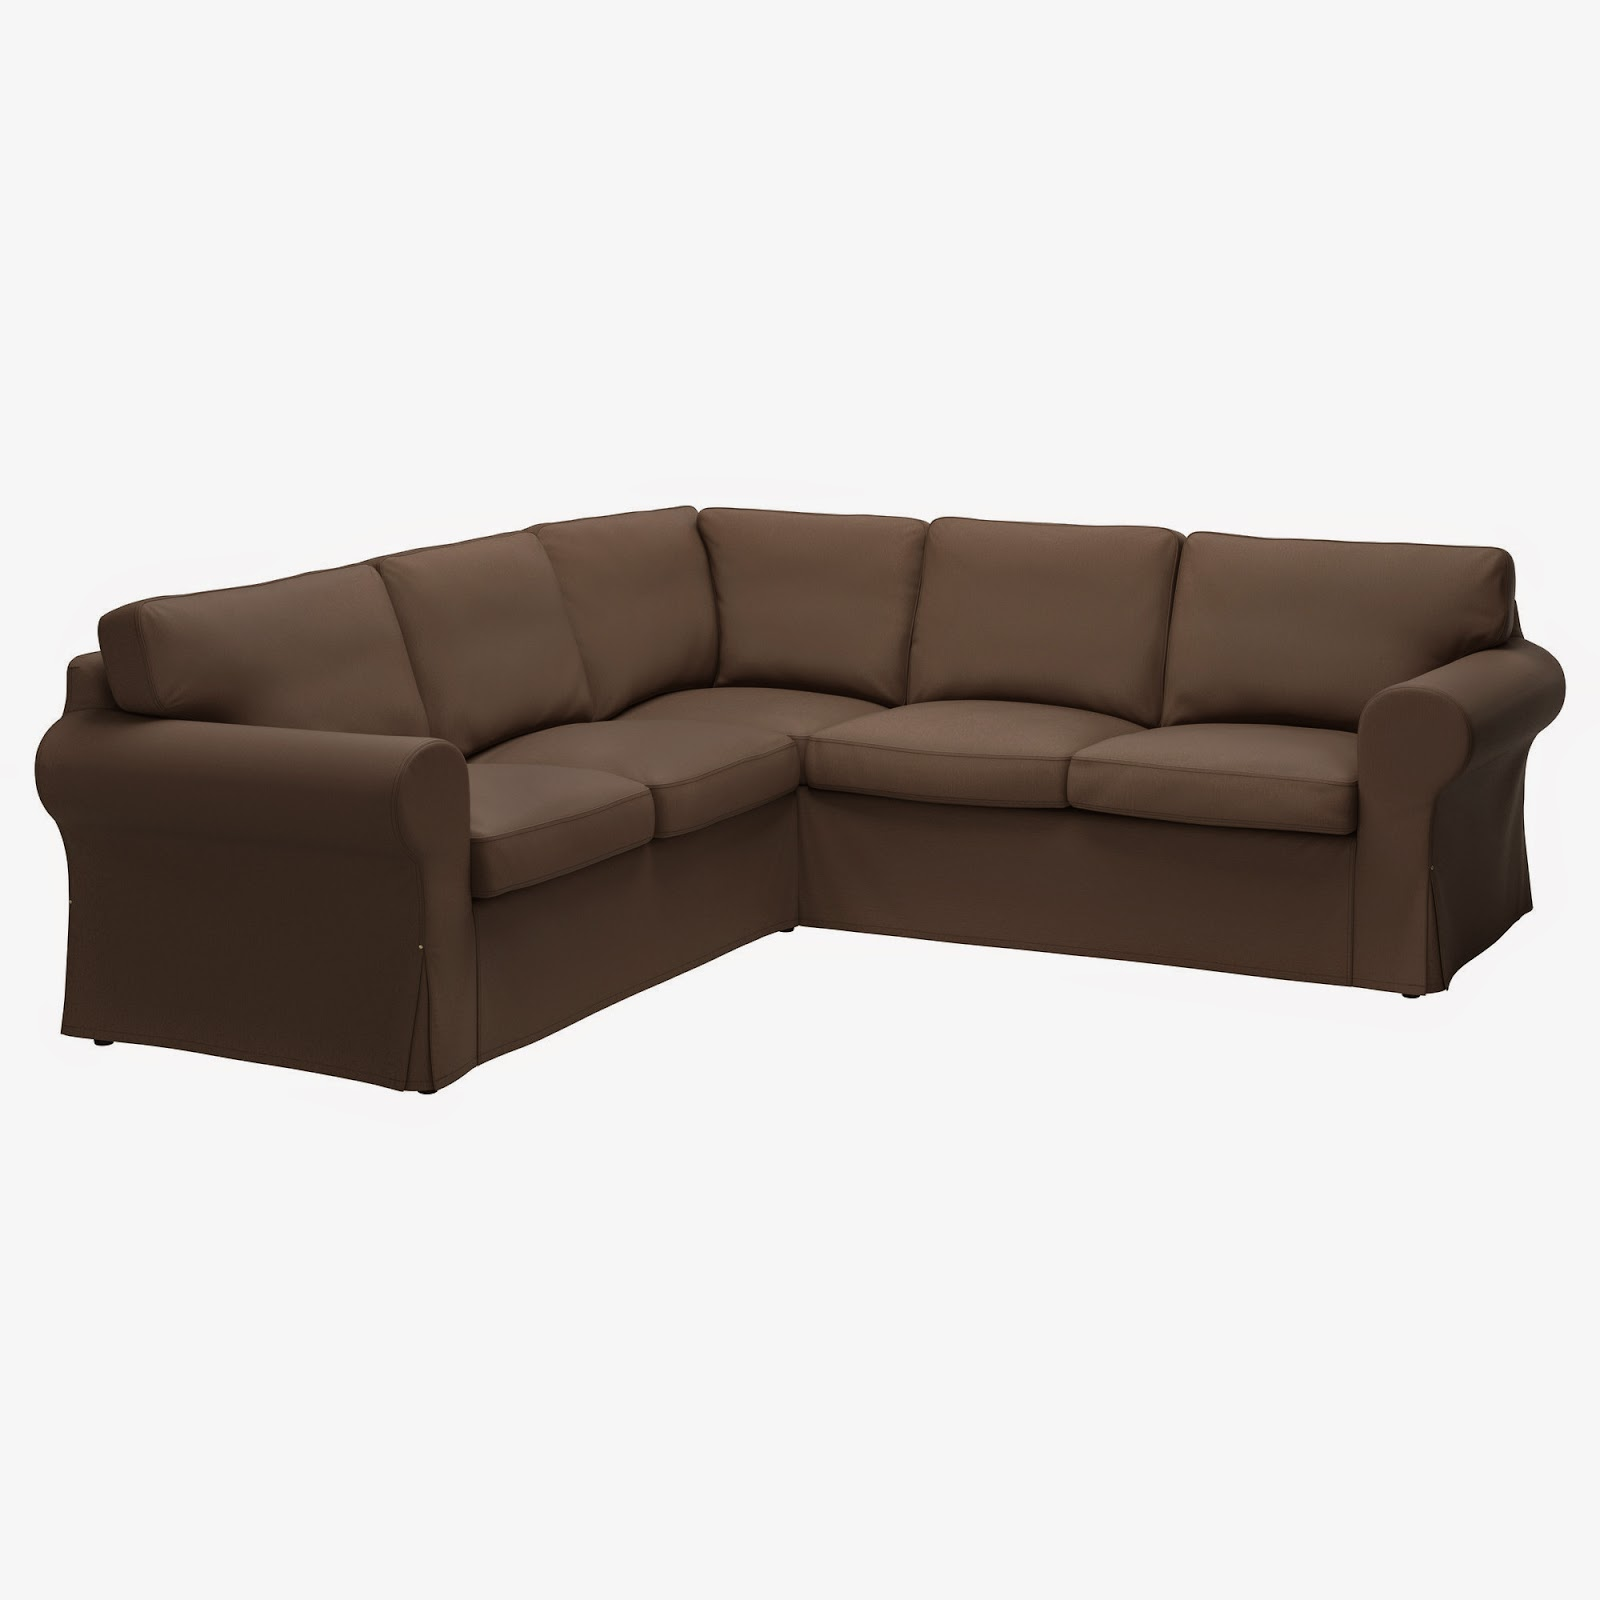 Sofa ideas ikea sofa set for Ikea sofa set